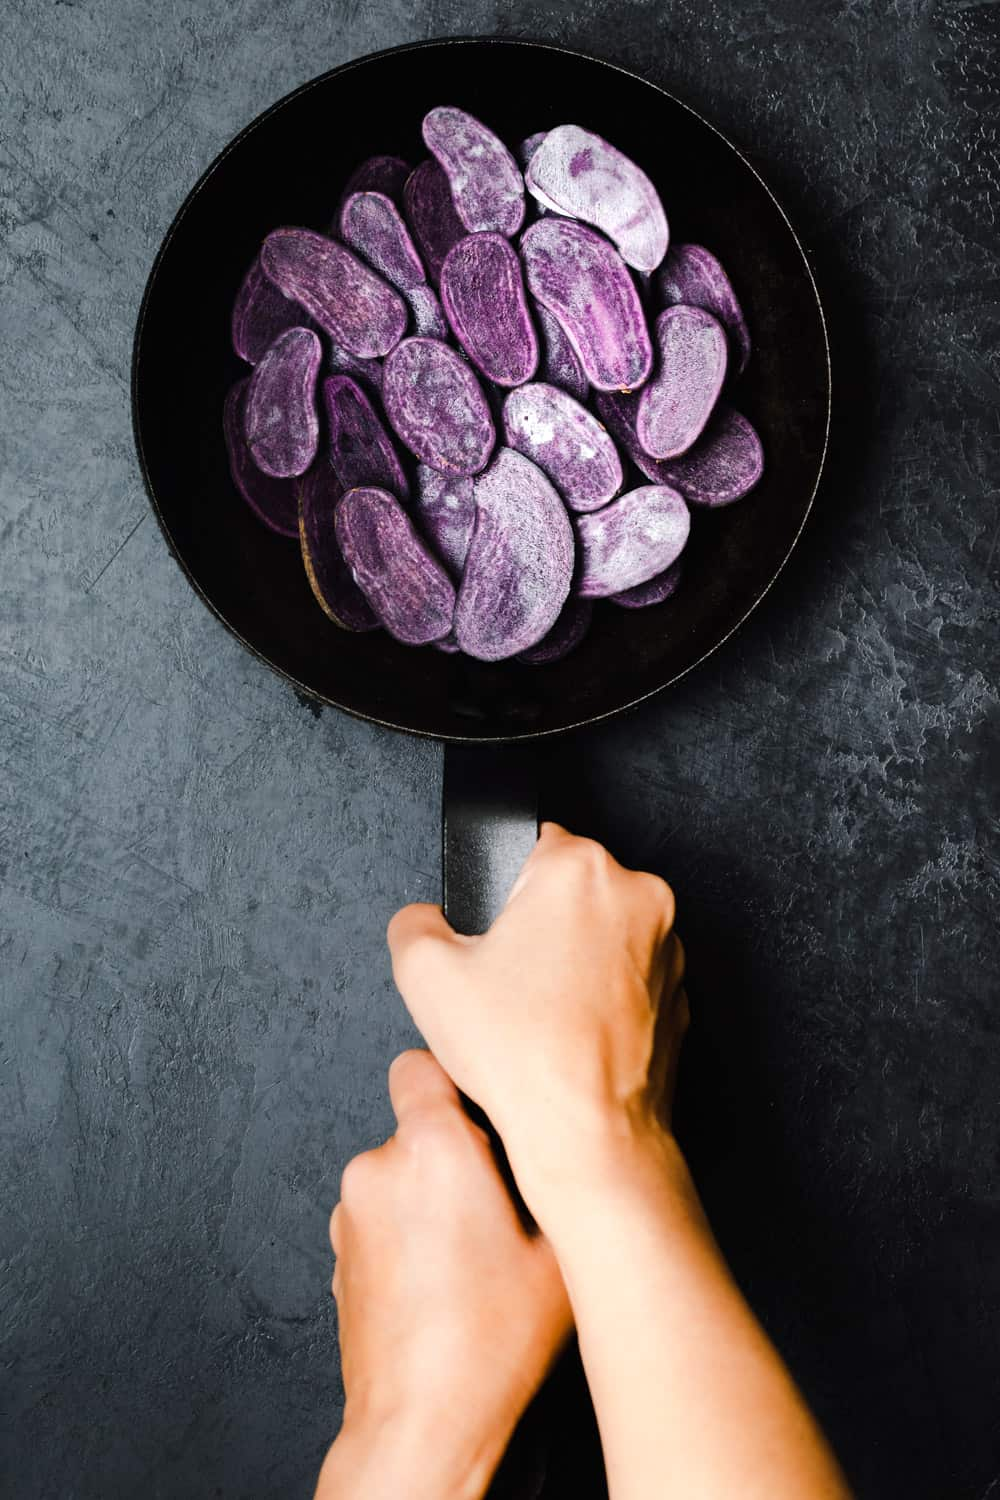 Daniela Gerson holding a cast iron skillet with purple potatoes cut in half on a black background; overhead shot.